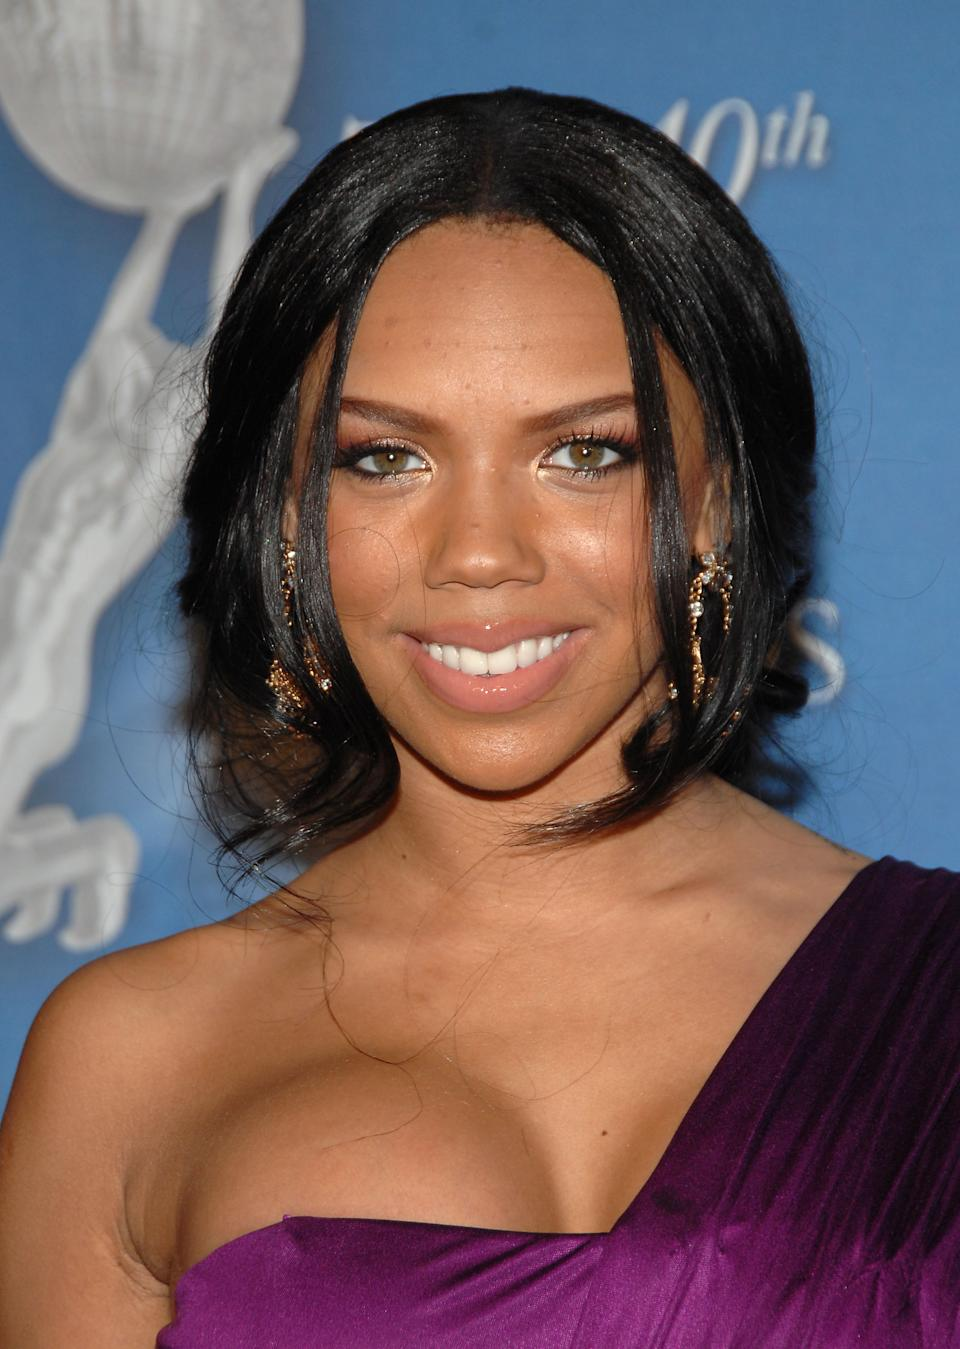 LOS ANGELES, CA - FEBRUARY 12:  Actress/singer Kiely Williams of The Cheetah Girls arrives at the 40th NAACP Image Awards at the Shrine Auditorium on February 12, 2009 in Los Angeles, California.  (Photo by John Shearer/WireImage)